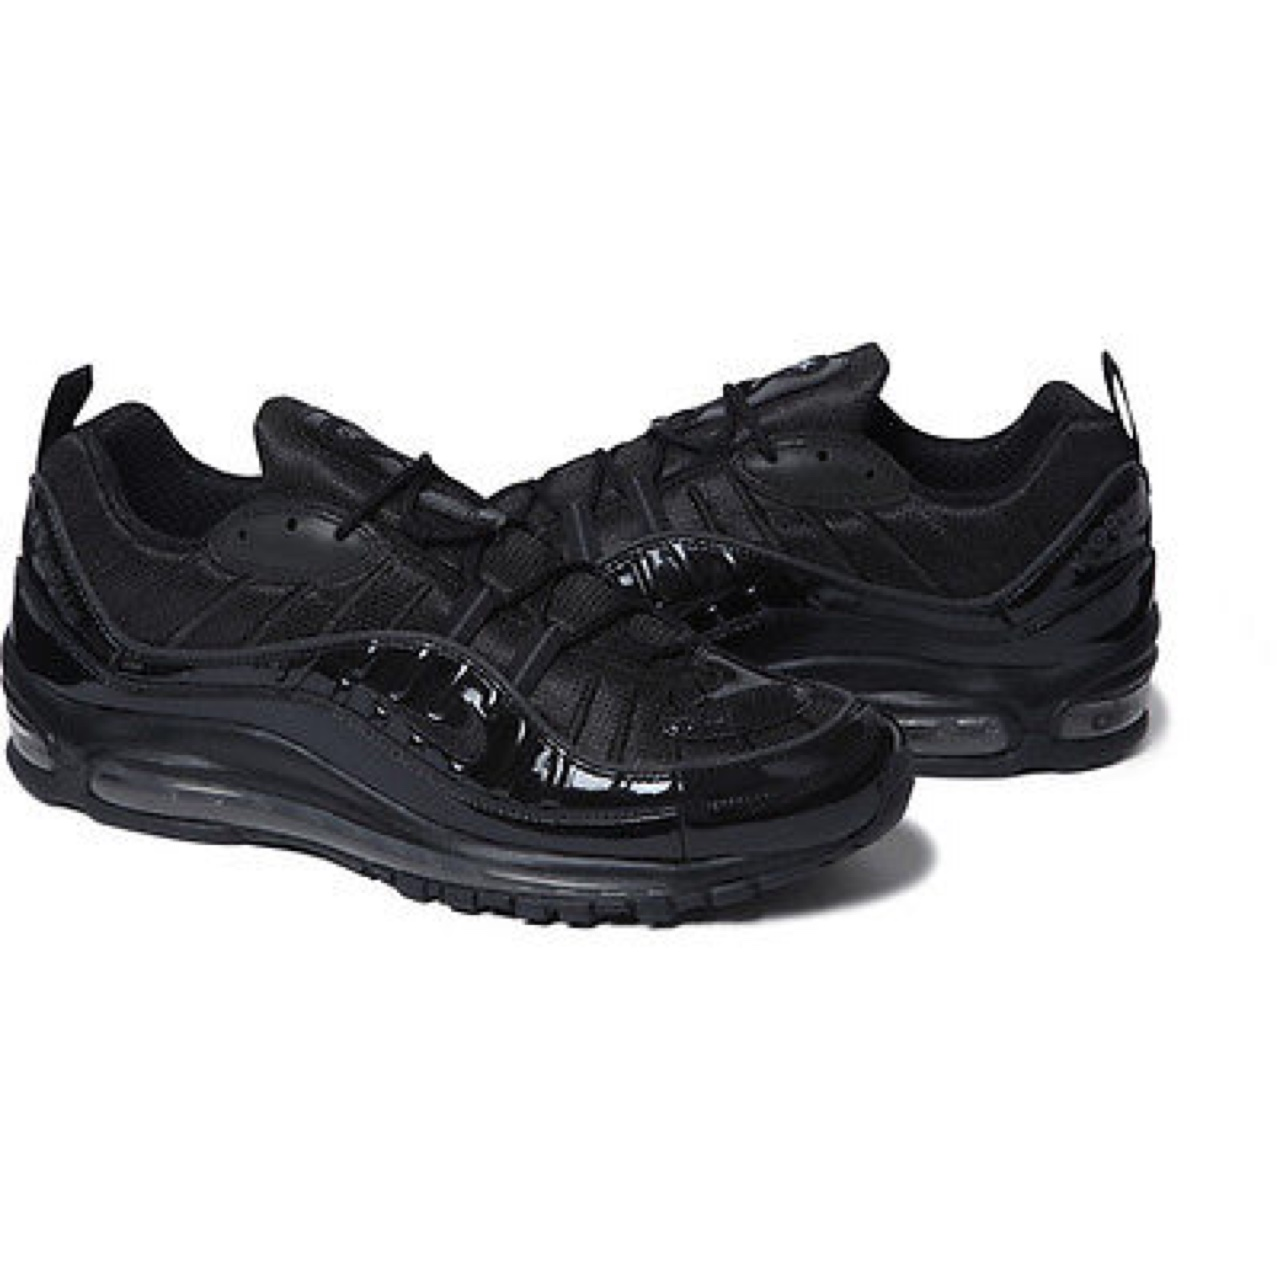 finest selection babdd 8cb74 Supreme Nike Air Max 98s in Black. Never worn,... - Depop